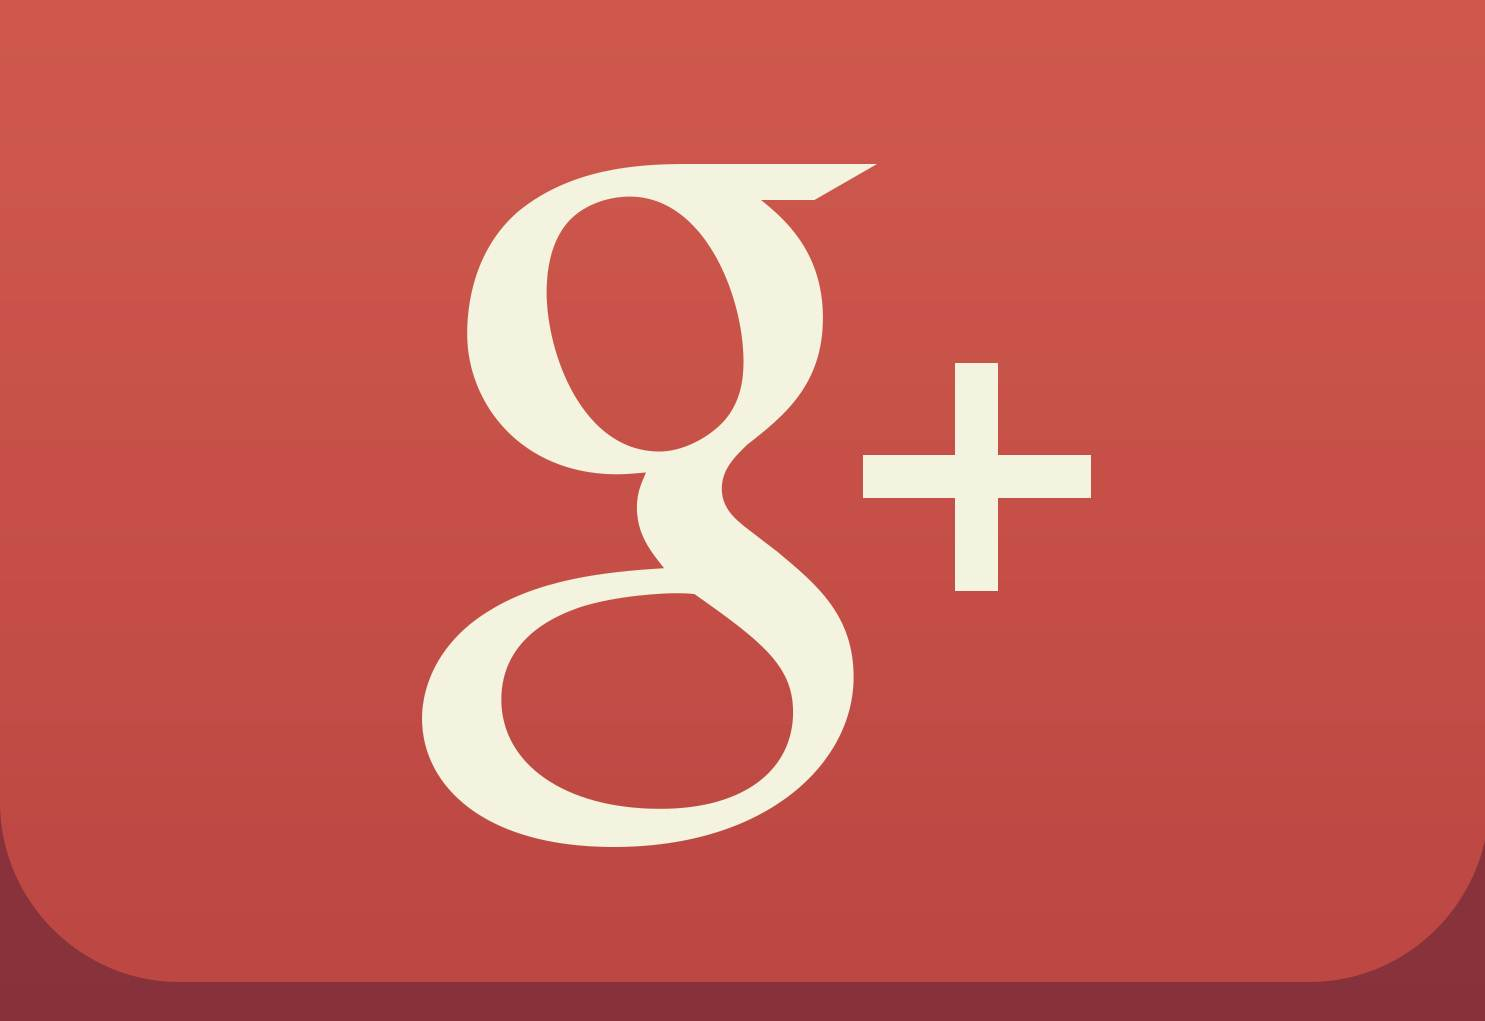 Why should i use Googleplus as a business [Infographic]